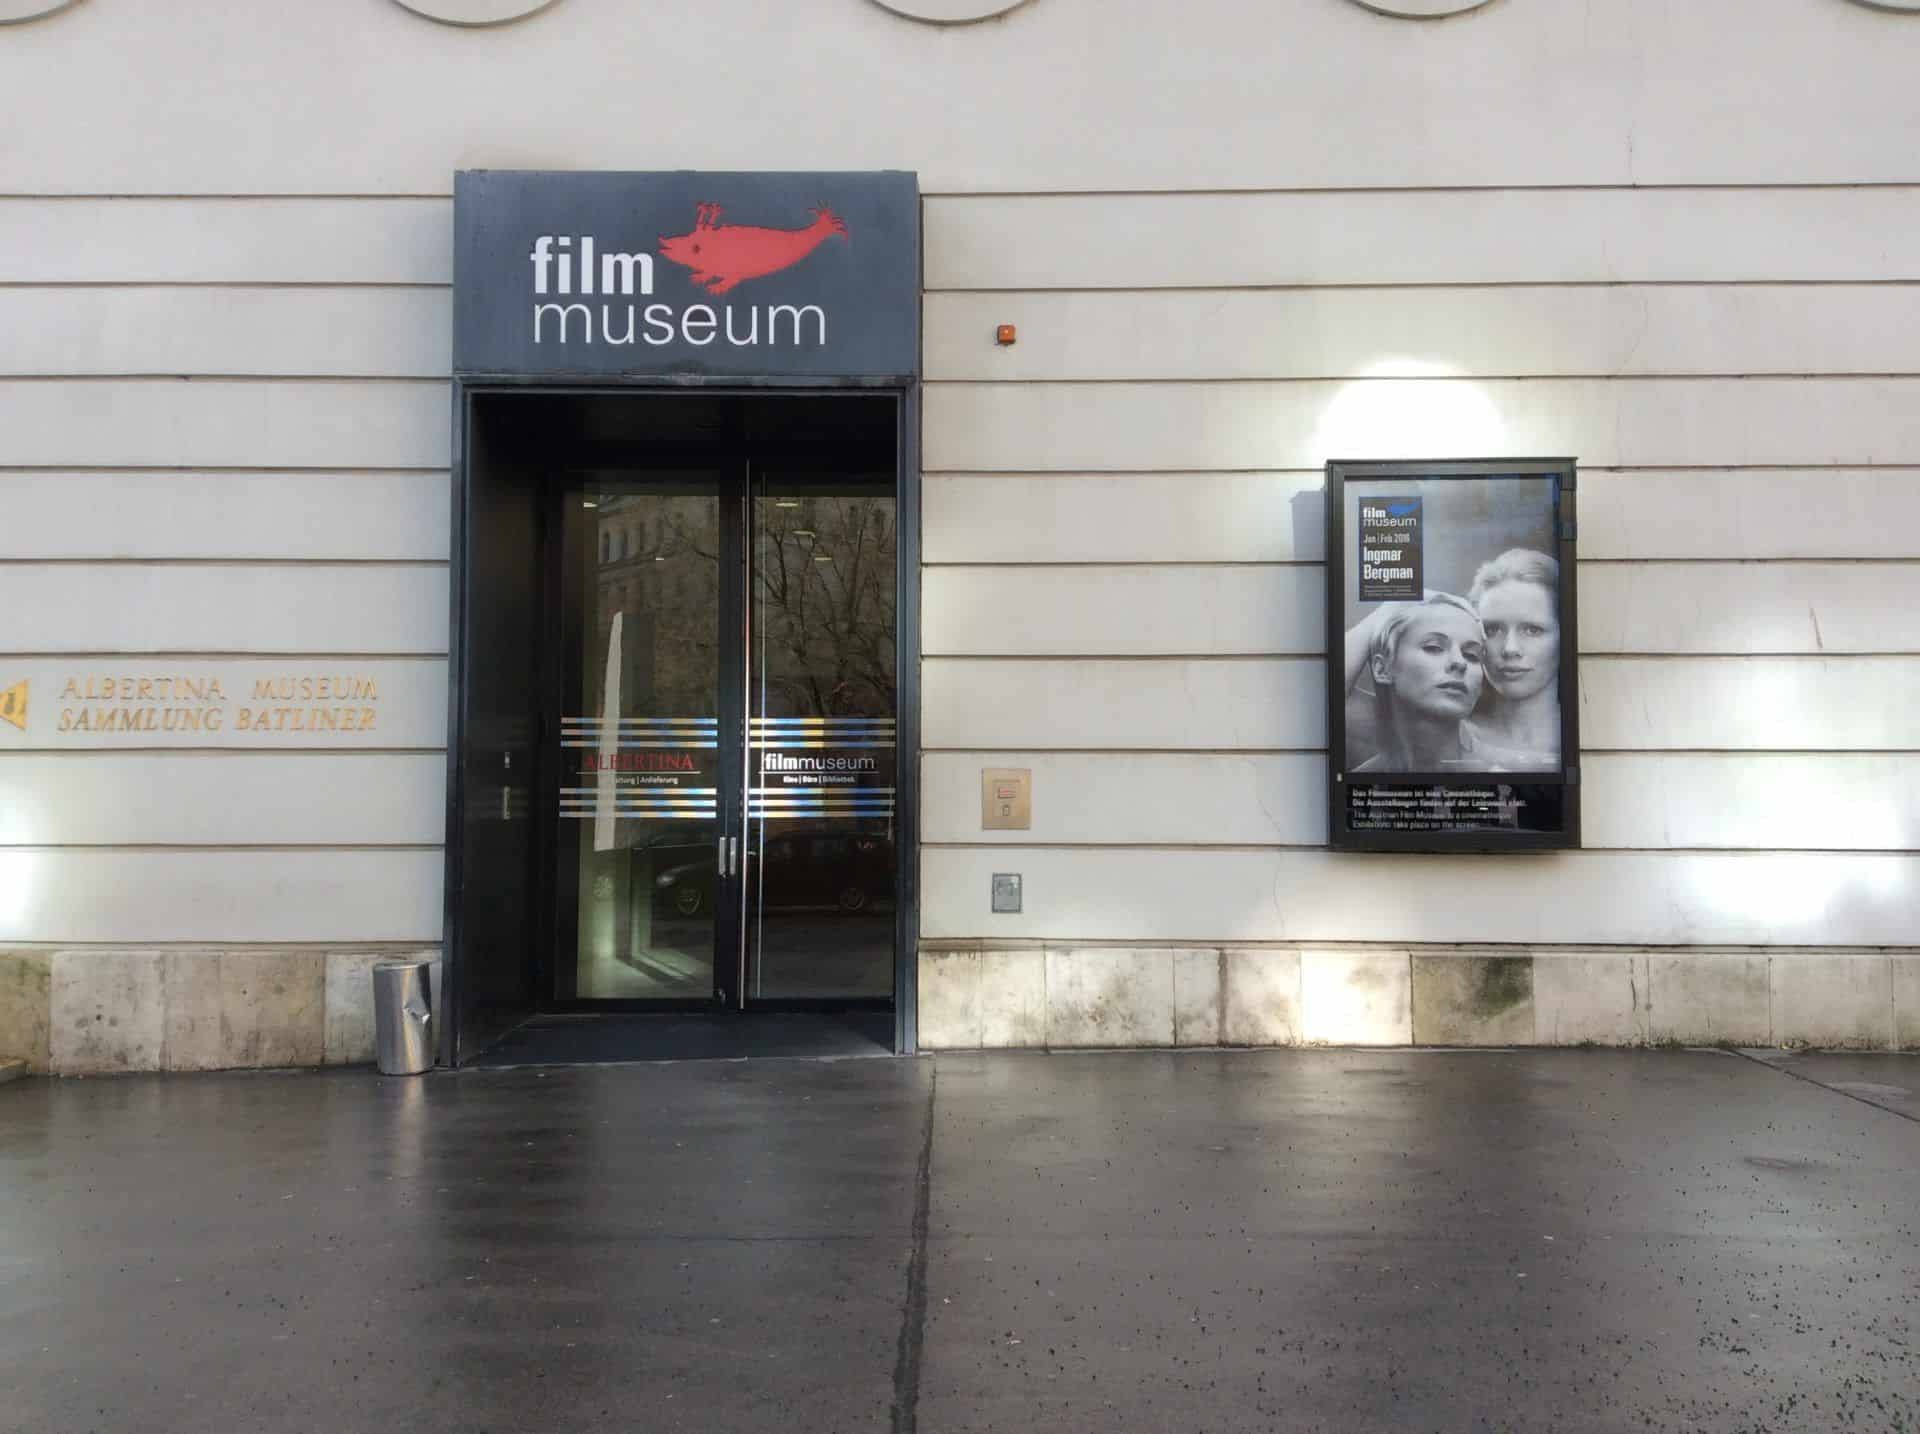 Entrance to the Austrian Museum of Cinema in Vienna. Photo: Julia Abramova, 2018